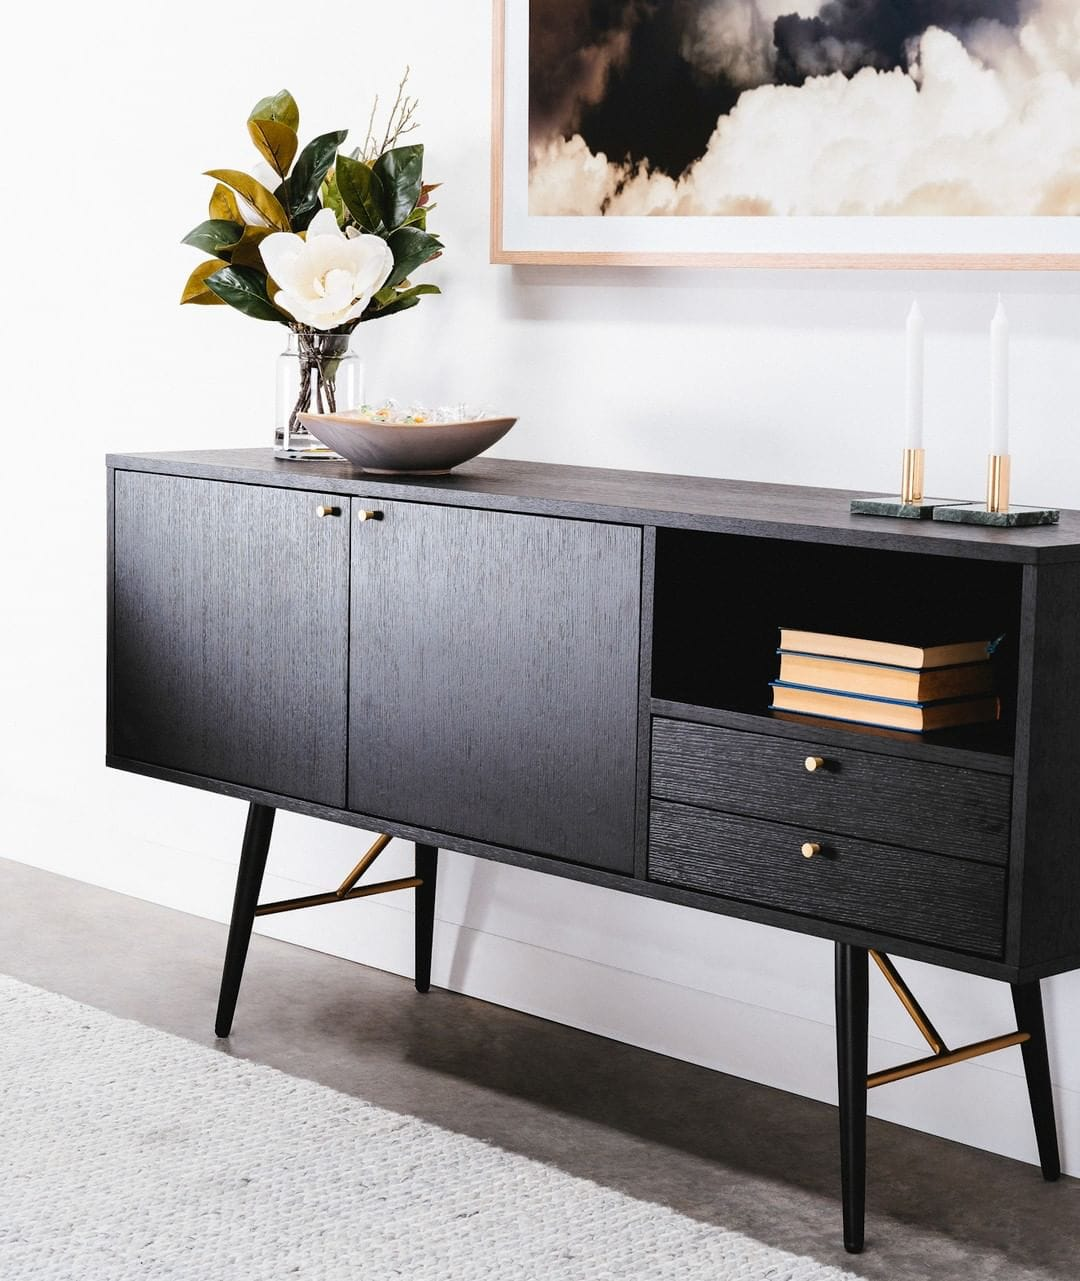 trent wooden buffet from interior secrets modern black sideboard with gold handles